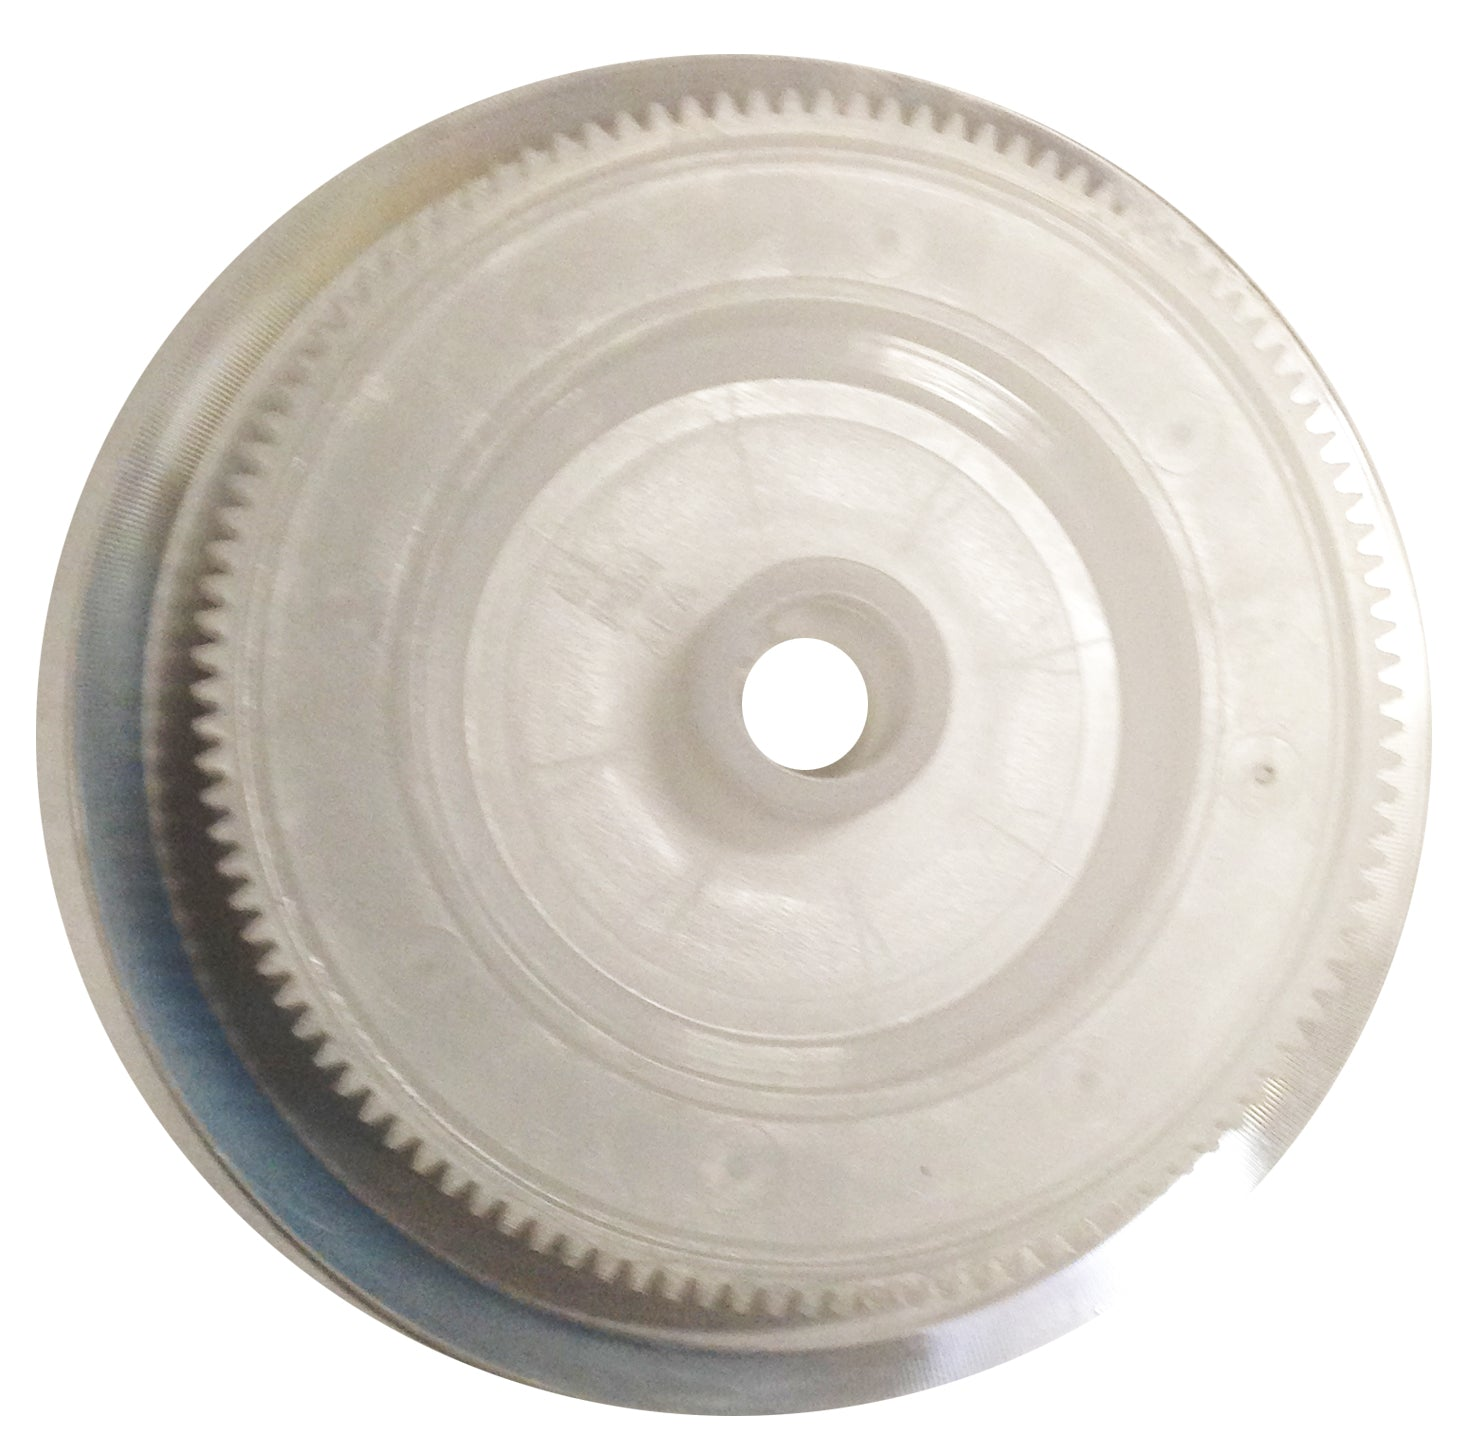 TexJet Shortee Encoder Wheel